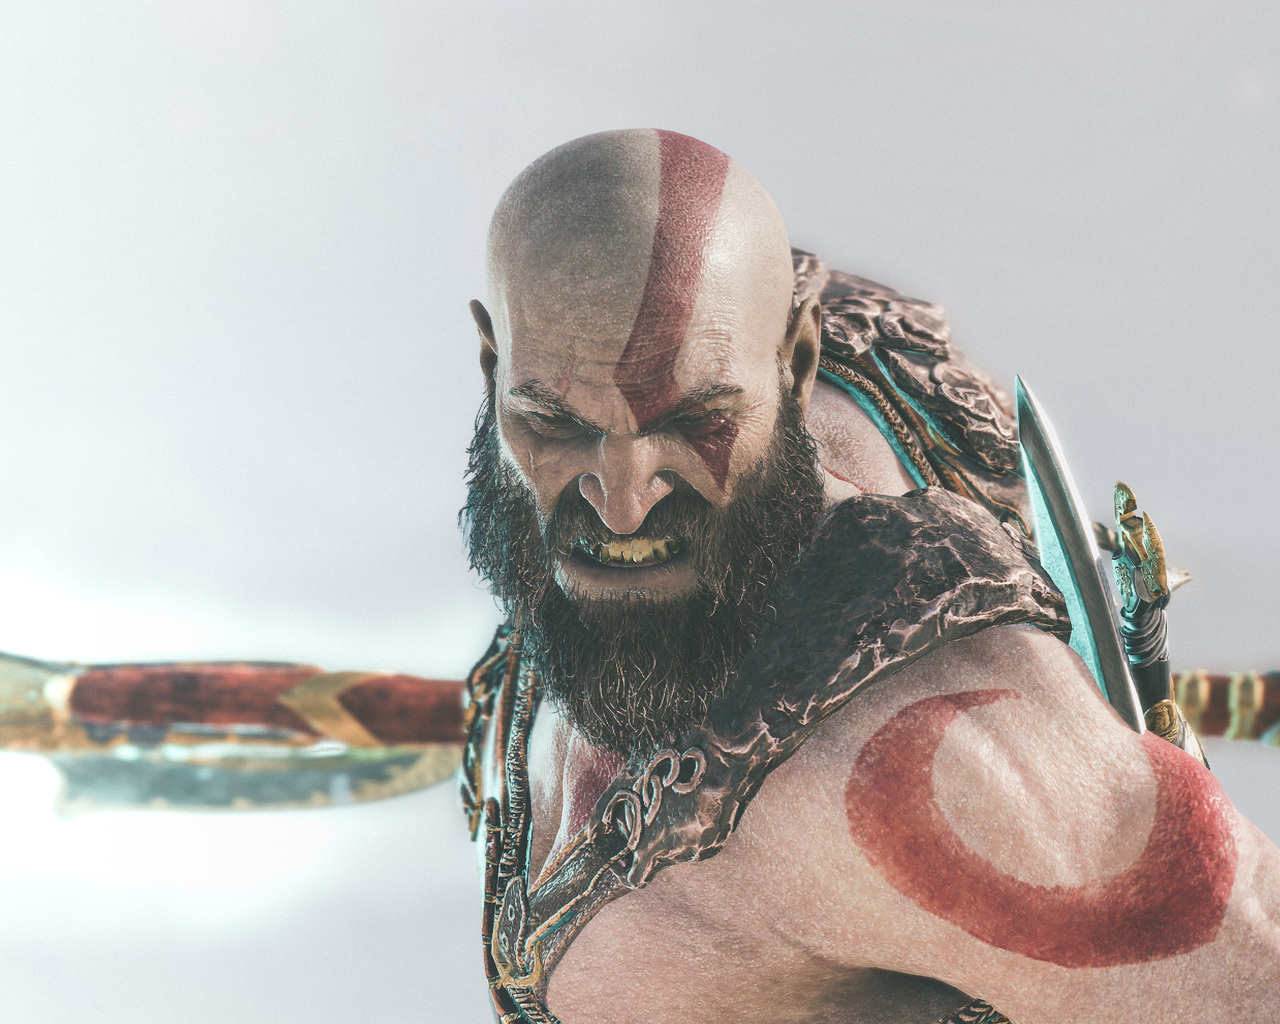 kratos-god-of-war-4k-2018-6y.jpg